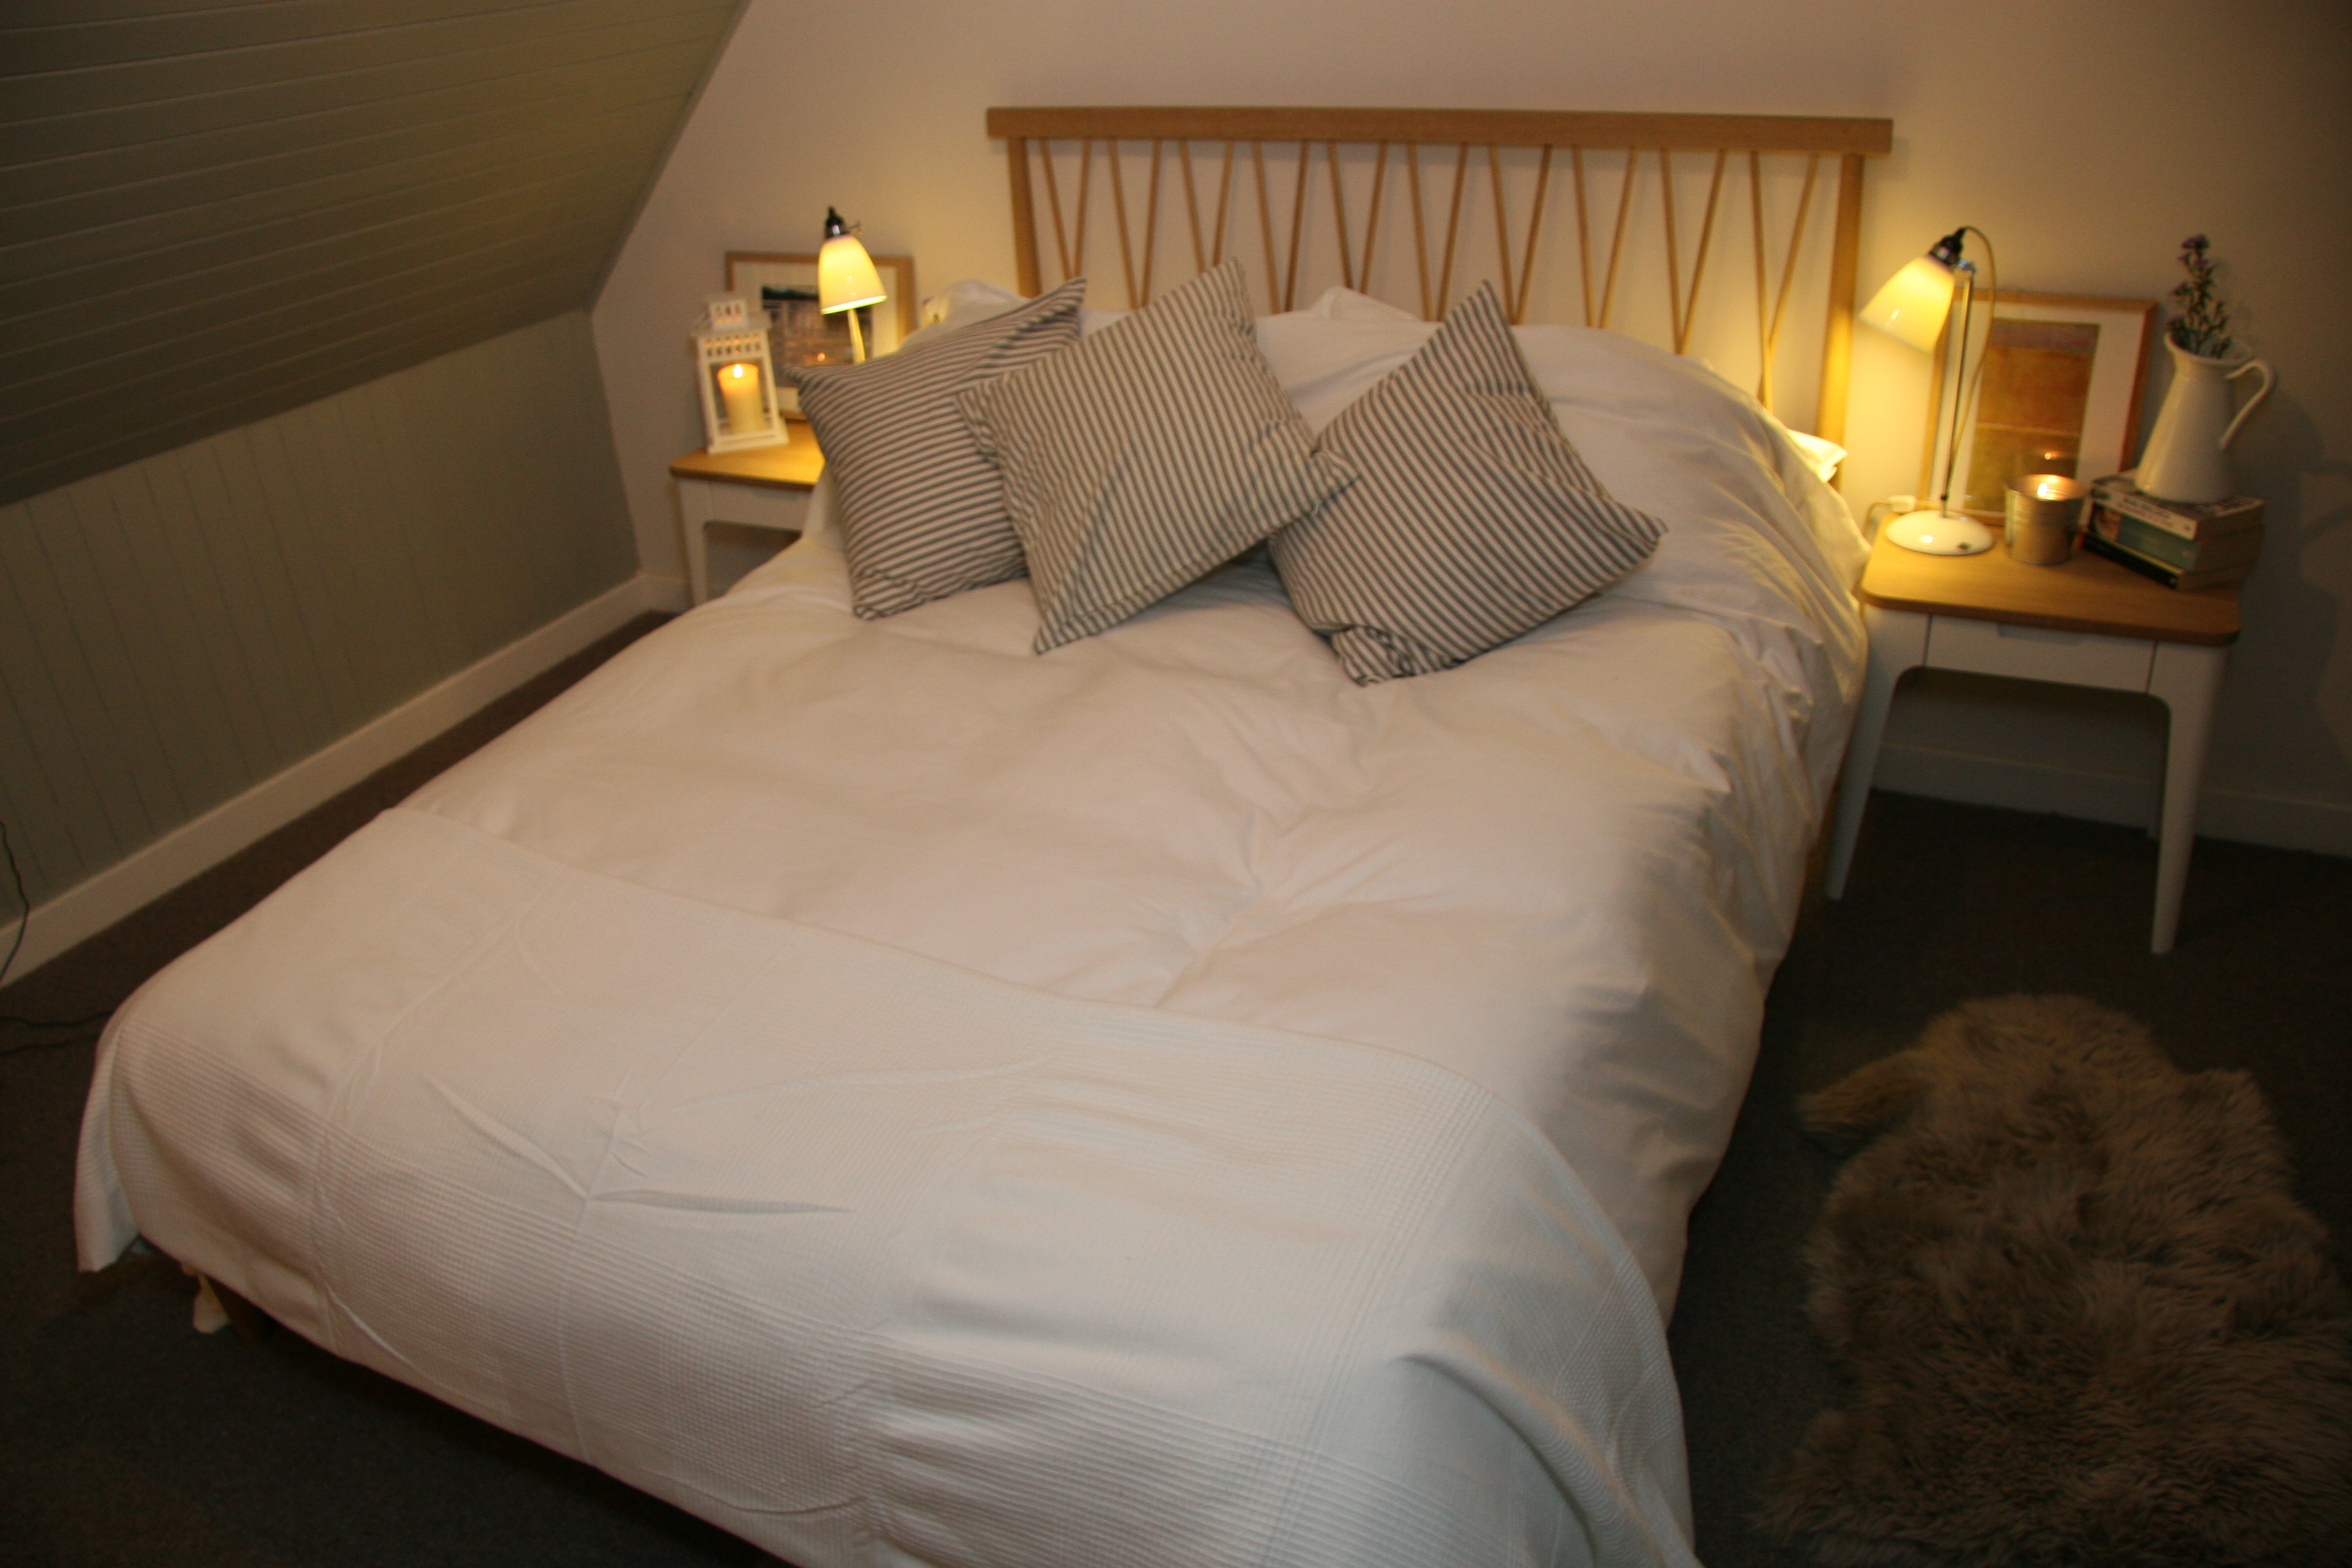 Stylish, comfortable bedroom with egyptian cotton sheets and beautifully crafted wooden furniture